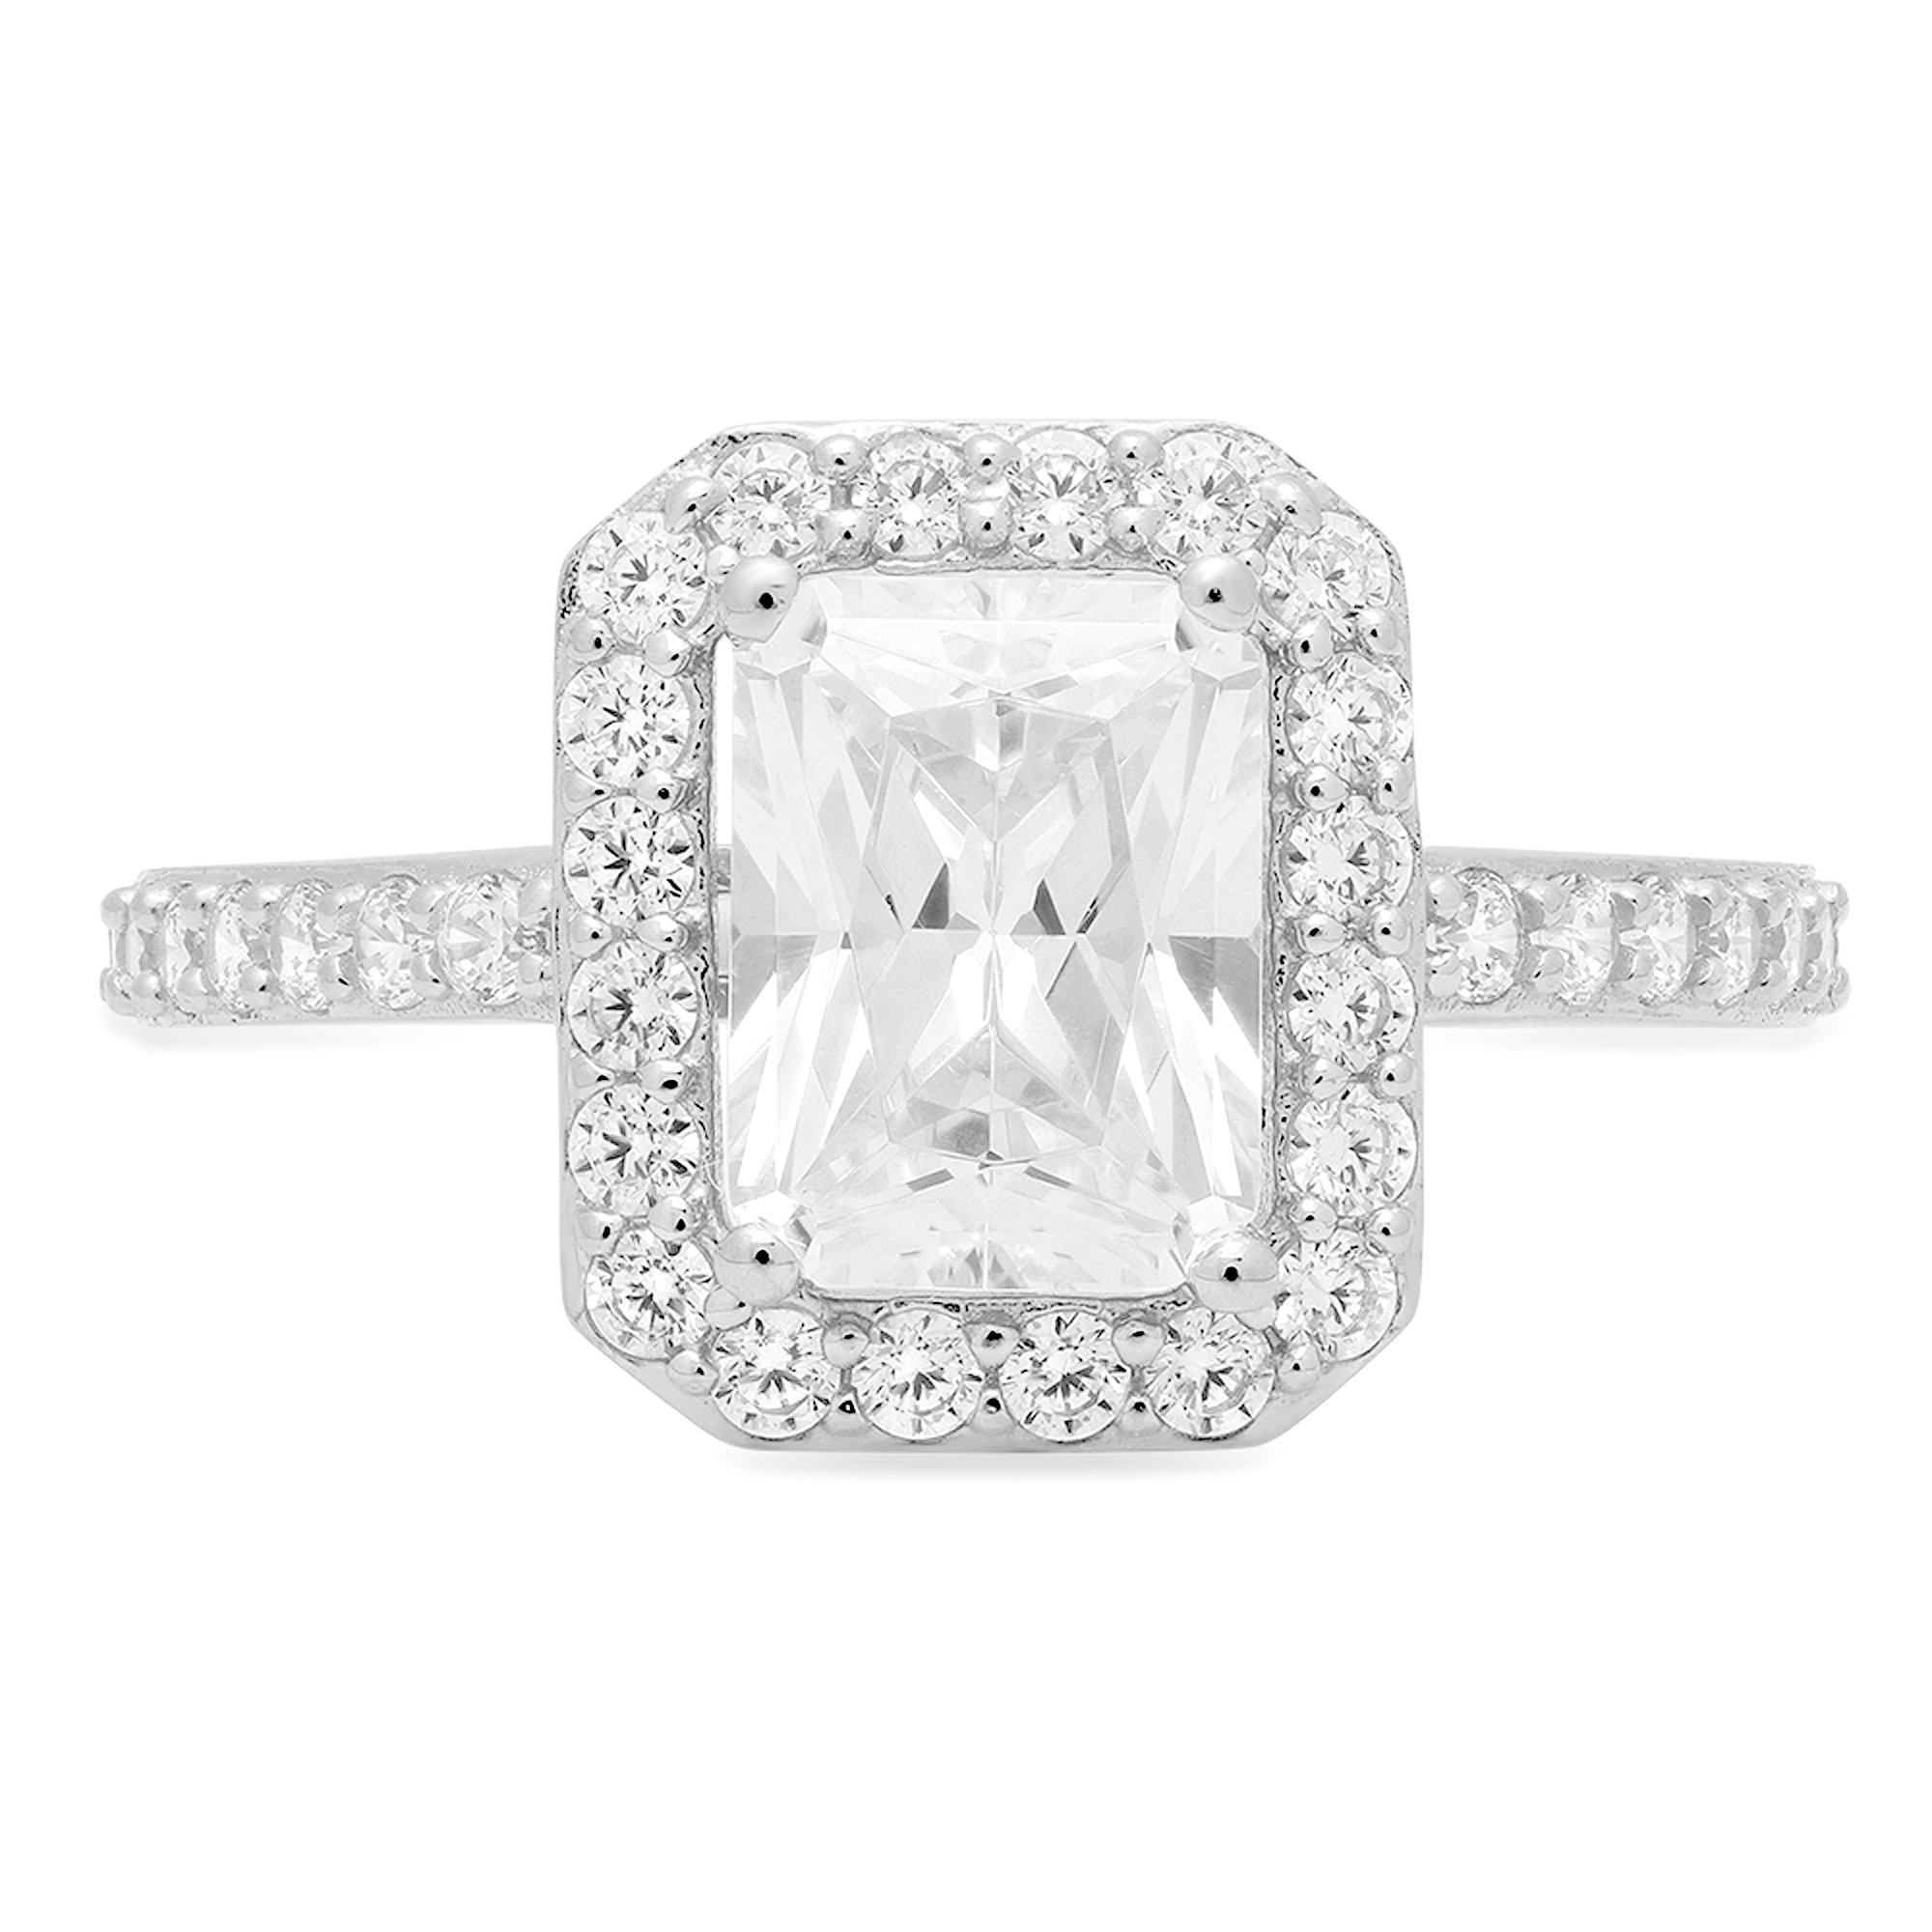 2.17ct Brilliant Emerald Round Cut Halo Solitaire Statement Simulated Diamond Petite Ring in Solid 14k White Gold for Women, 9.25